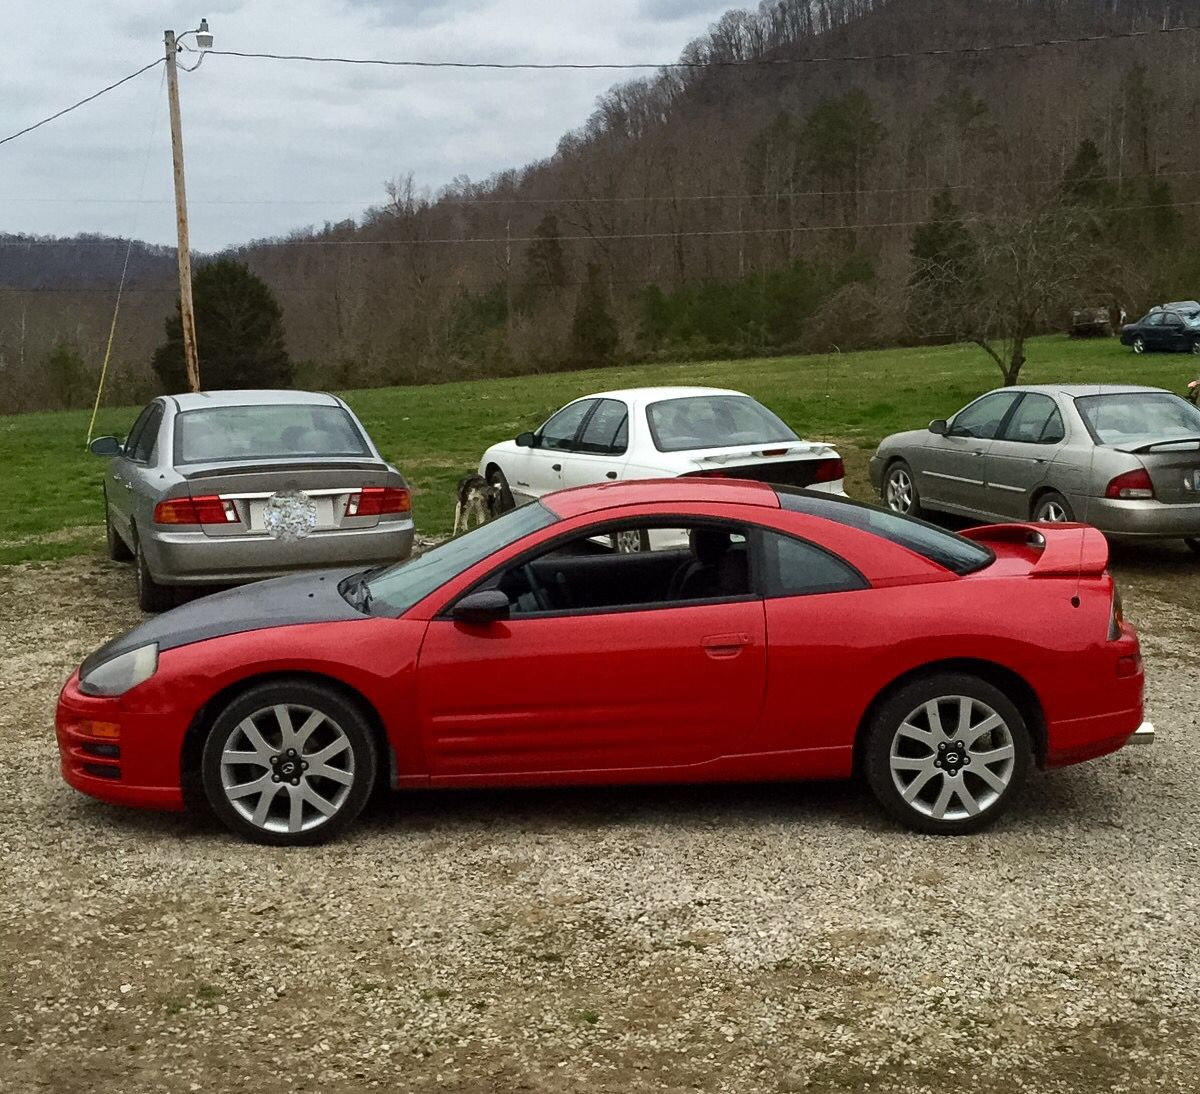 My 2000 Mitsubishi Eclipse Rs Project Car 18 Mazda 6 Gt Wheels